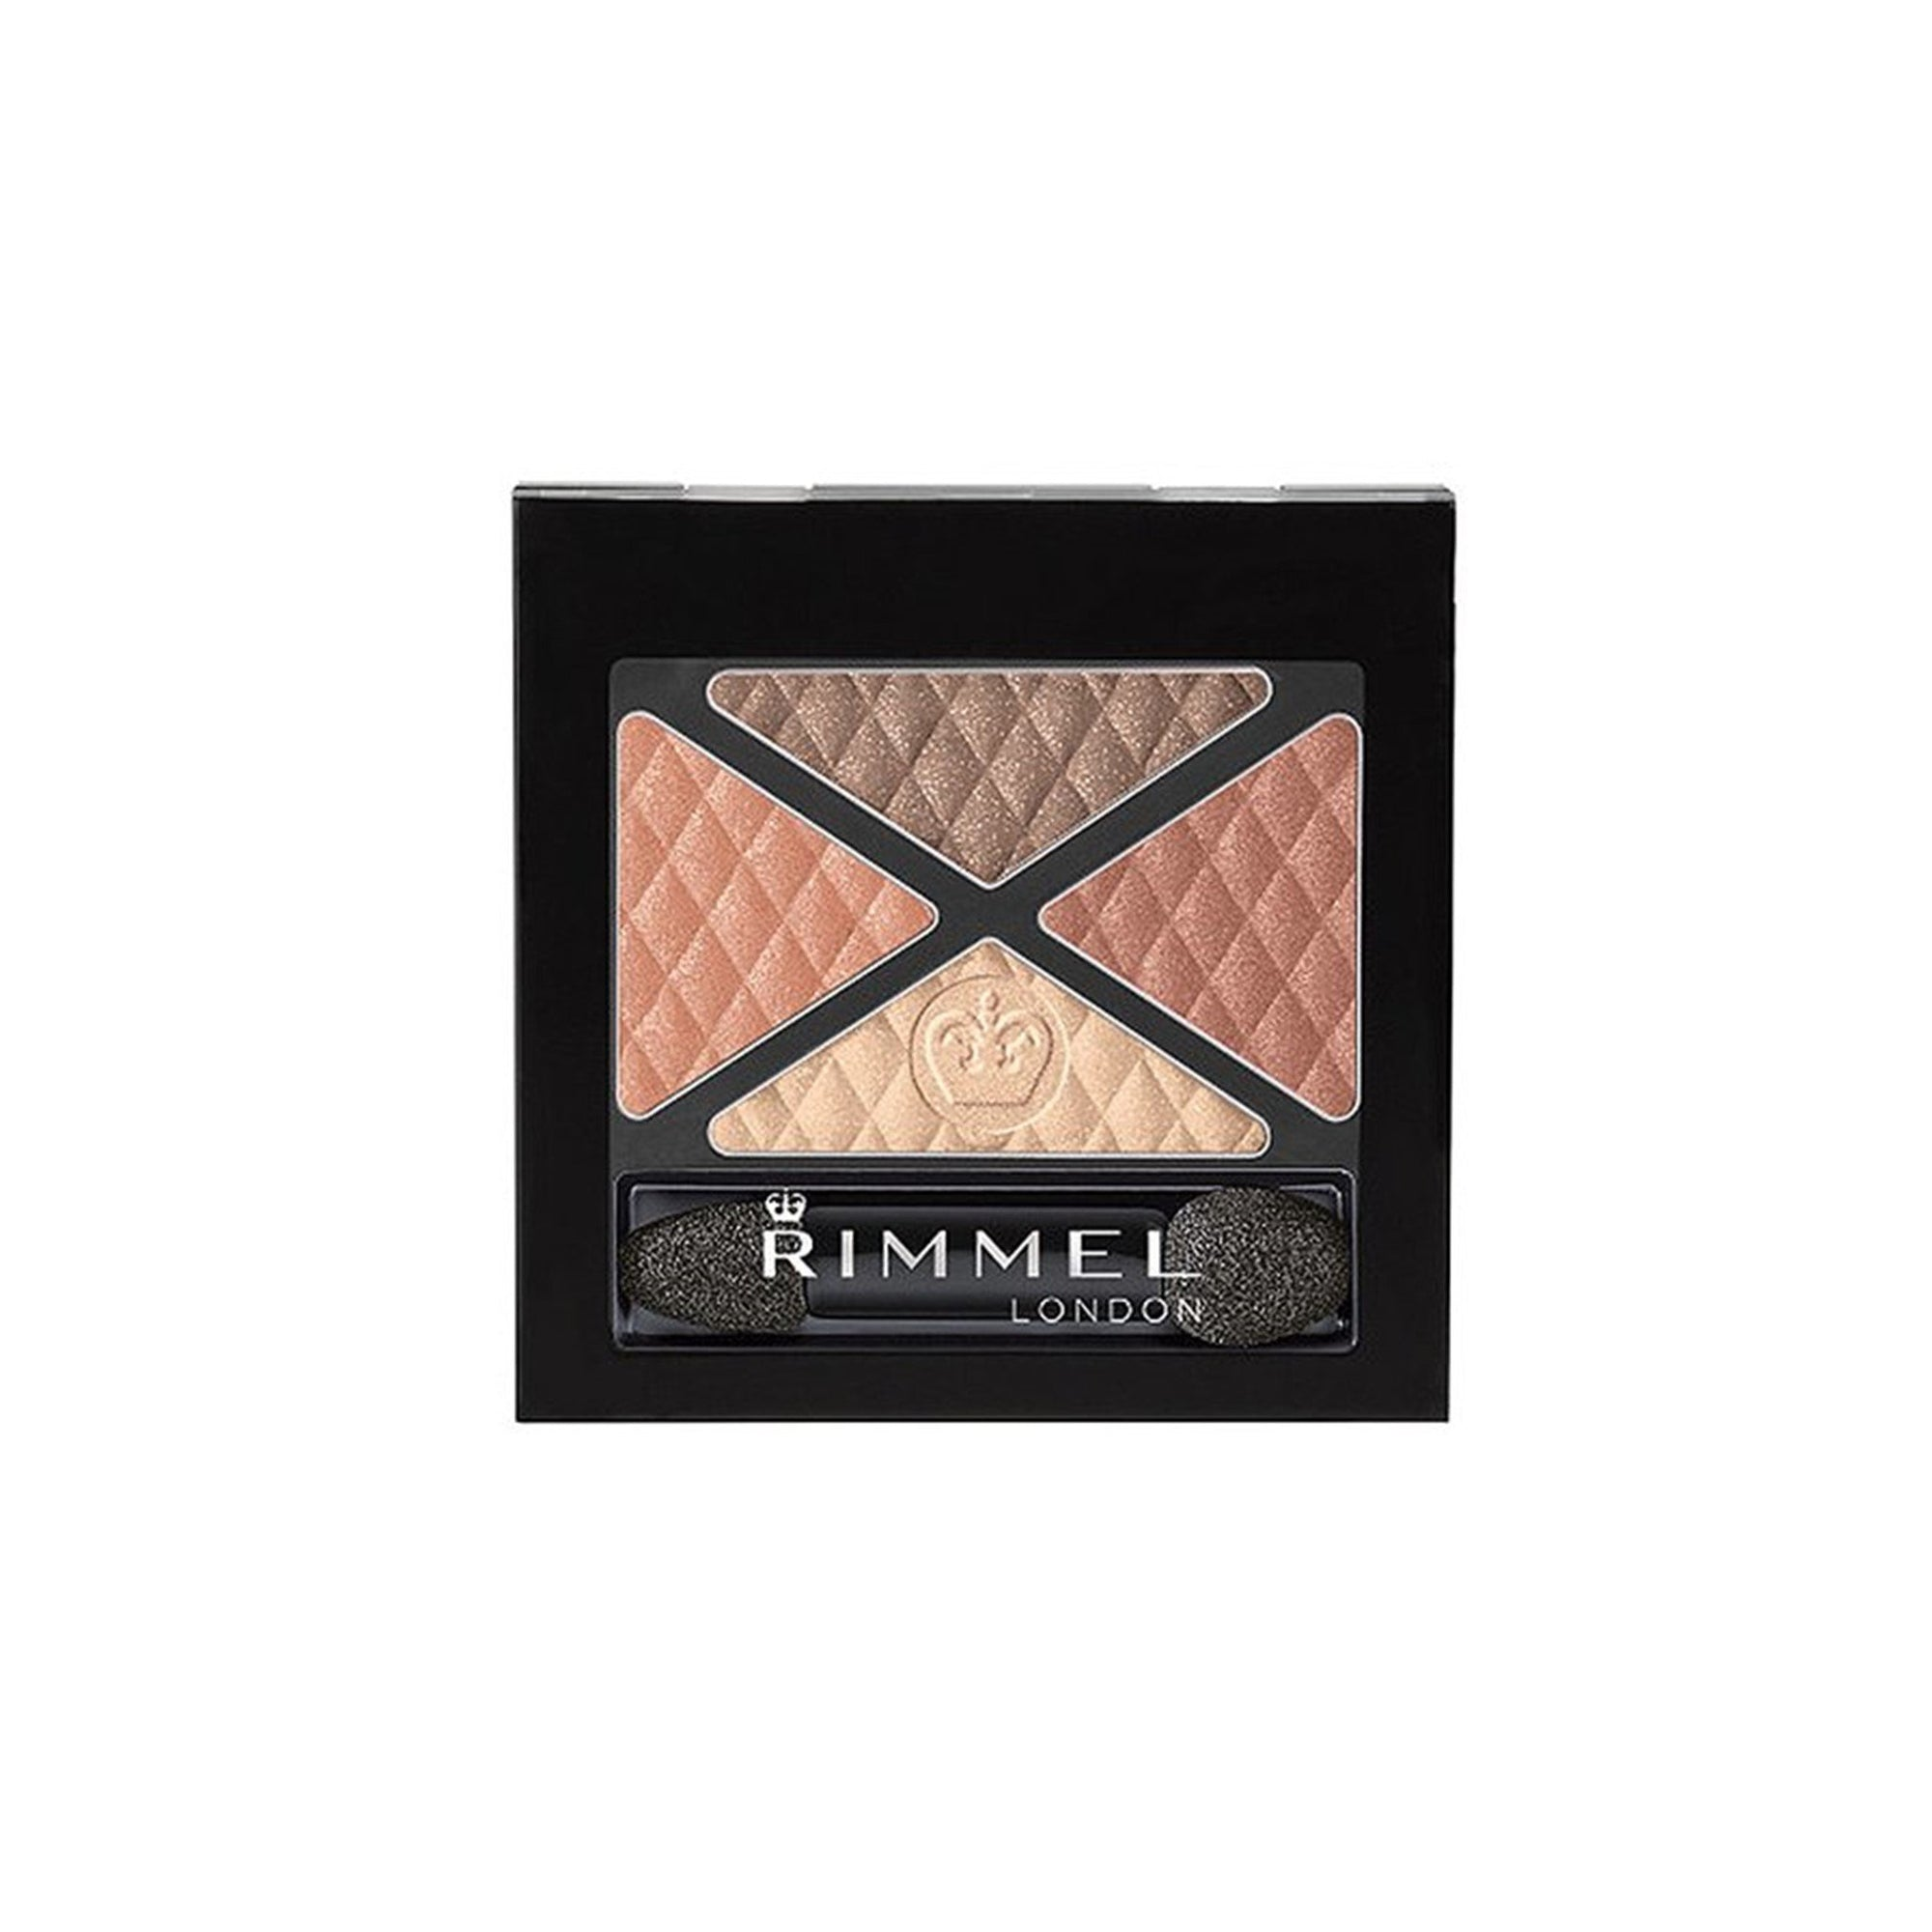 Rimmel London Glam Eyes Eye Shadow Quad 019 Safari